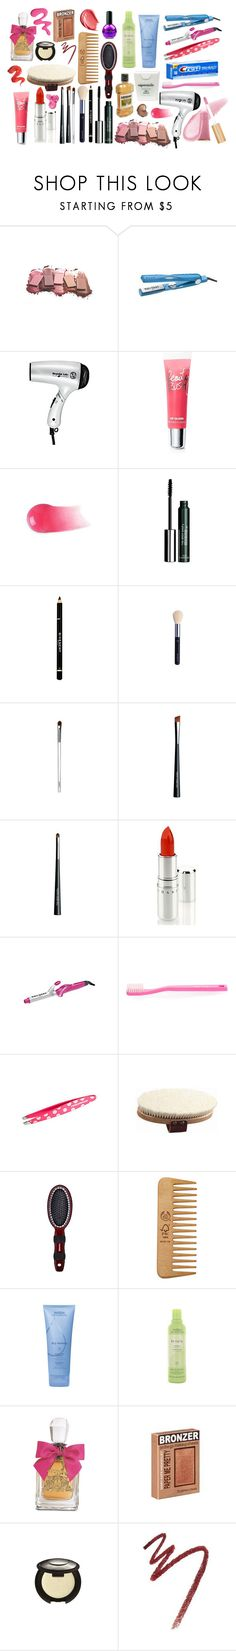 """""""The Clique's Daily Makeup Routine"""" by katie225 ❤ liked on Polyvore featuring Mary Kay, Bed Head by TIGI, T3, Victoria's Secret, Jane Iredale, The Body Shop, Givenchy, Clinique, Chantecaille and Paul Smith"""